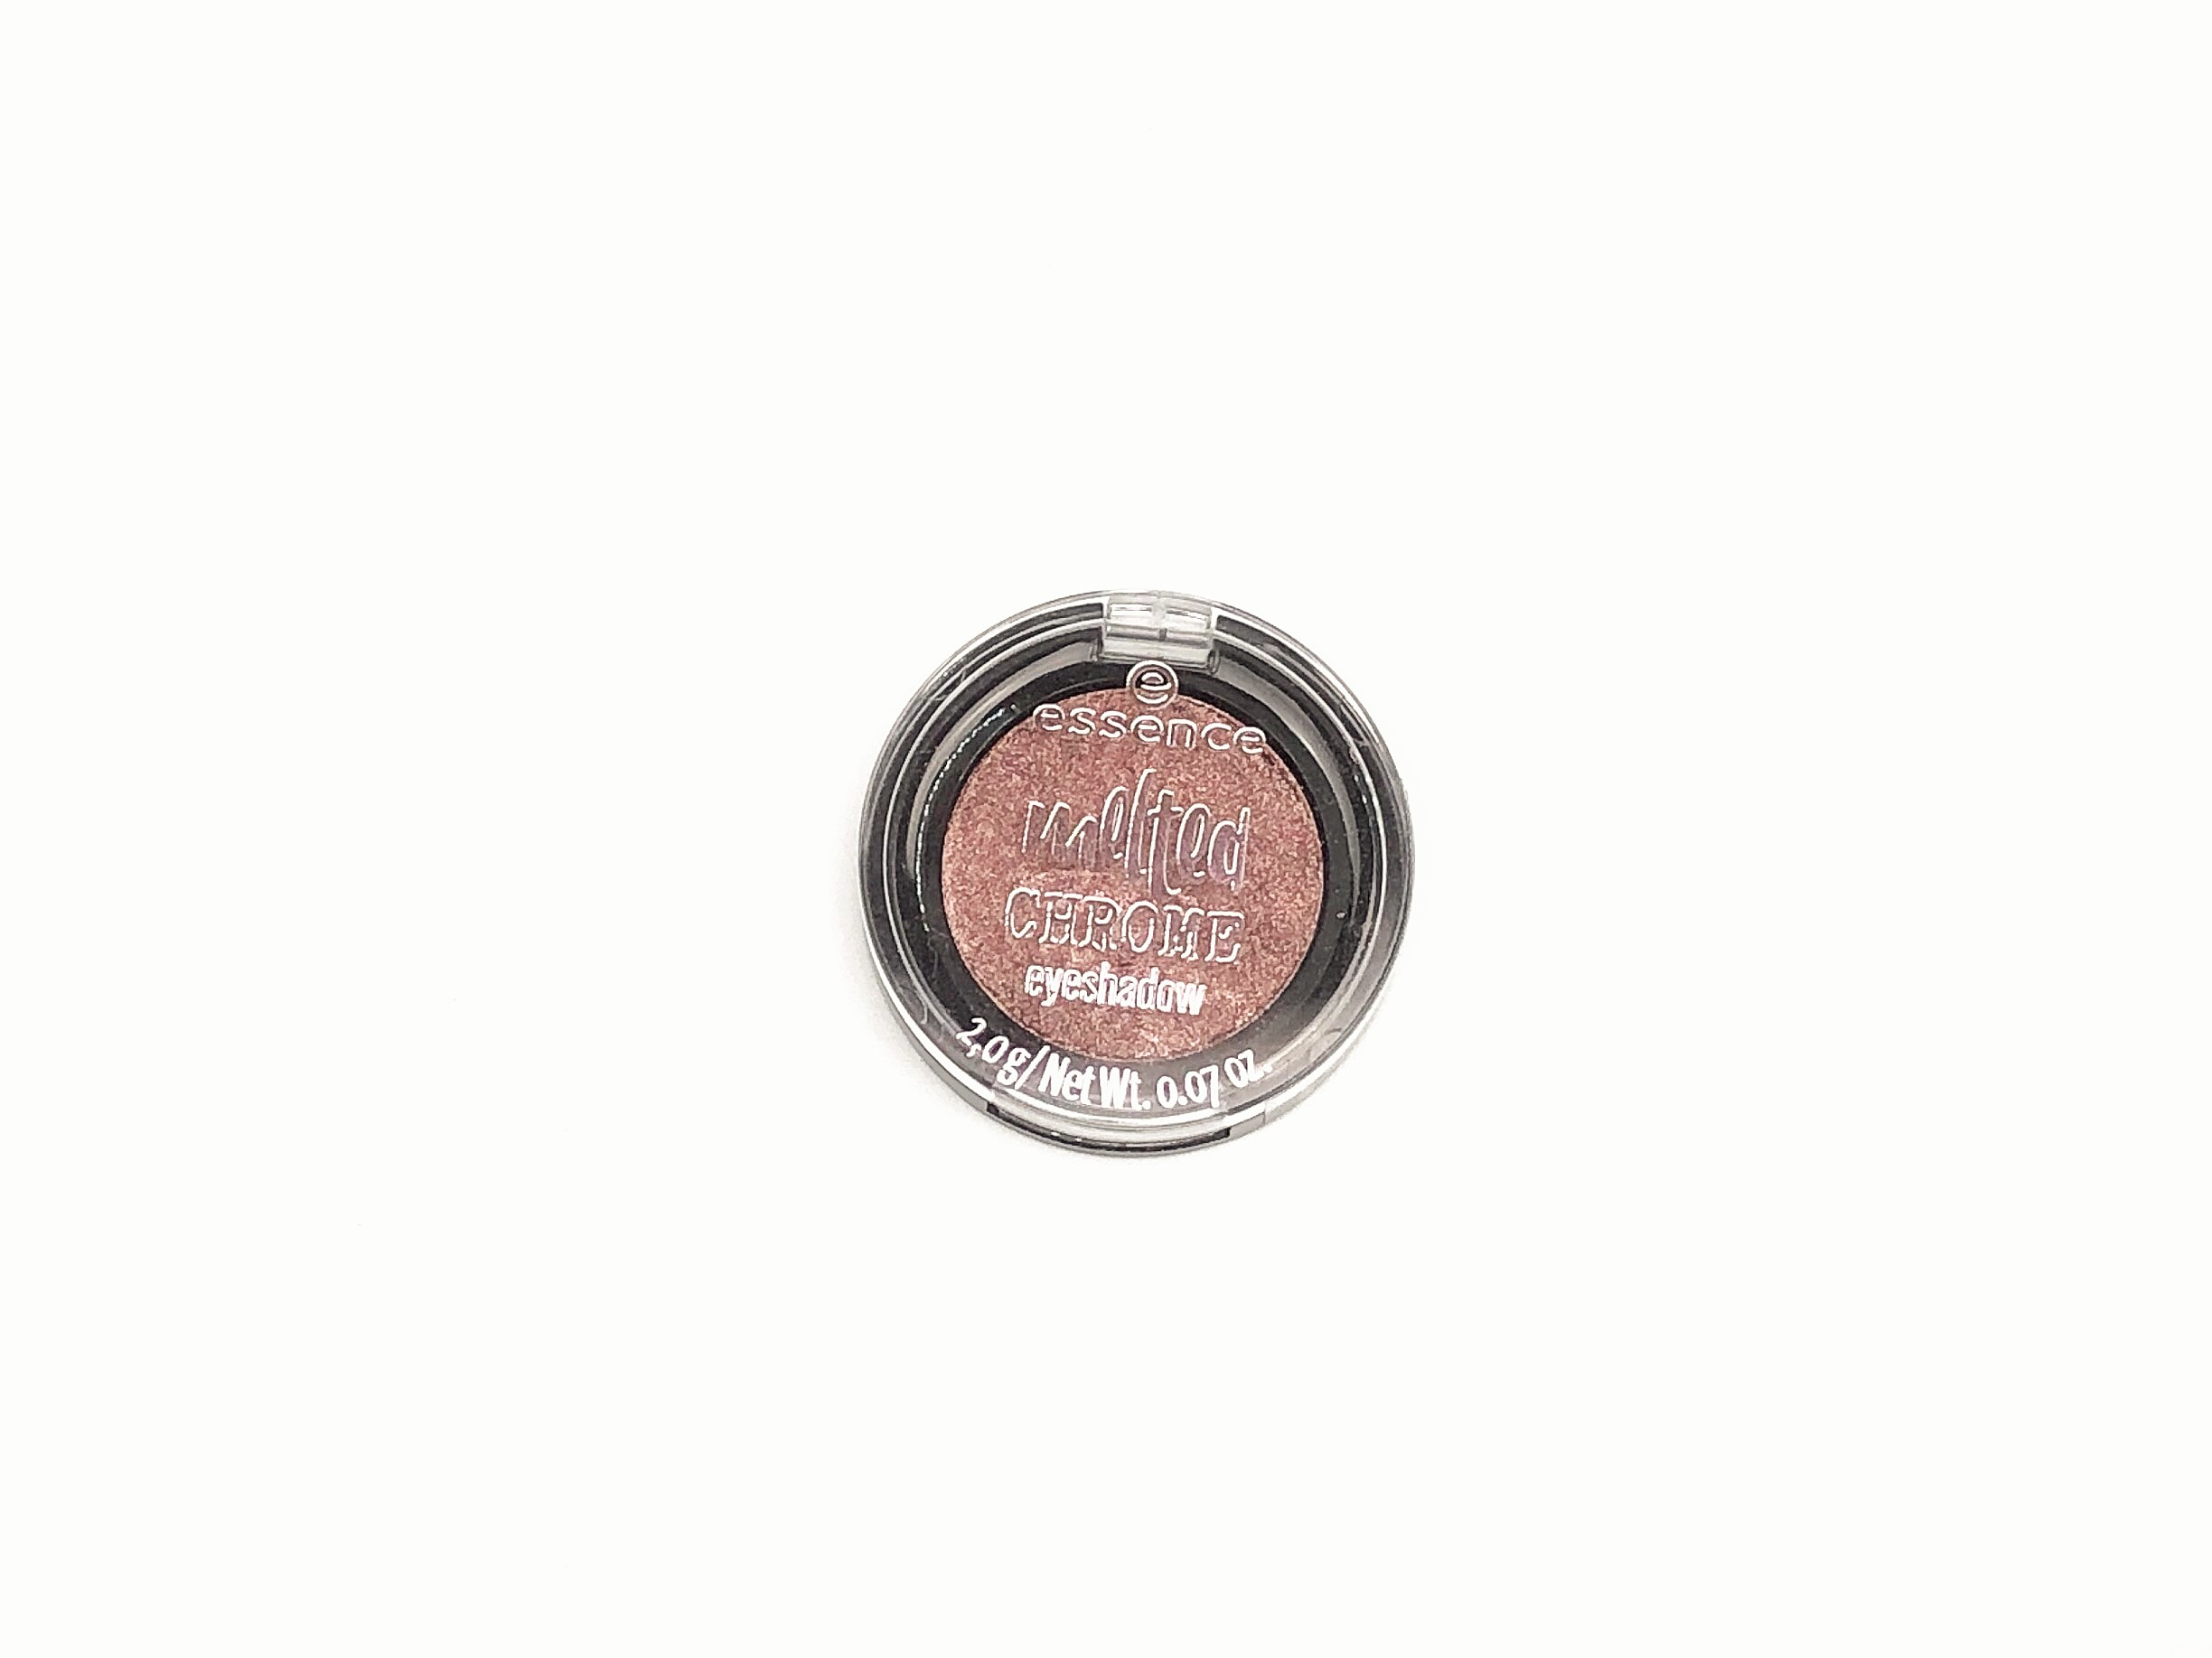 Recensione Essence Zink About You Melted Chrome Eyeshadow (1)